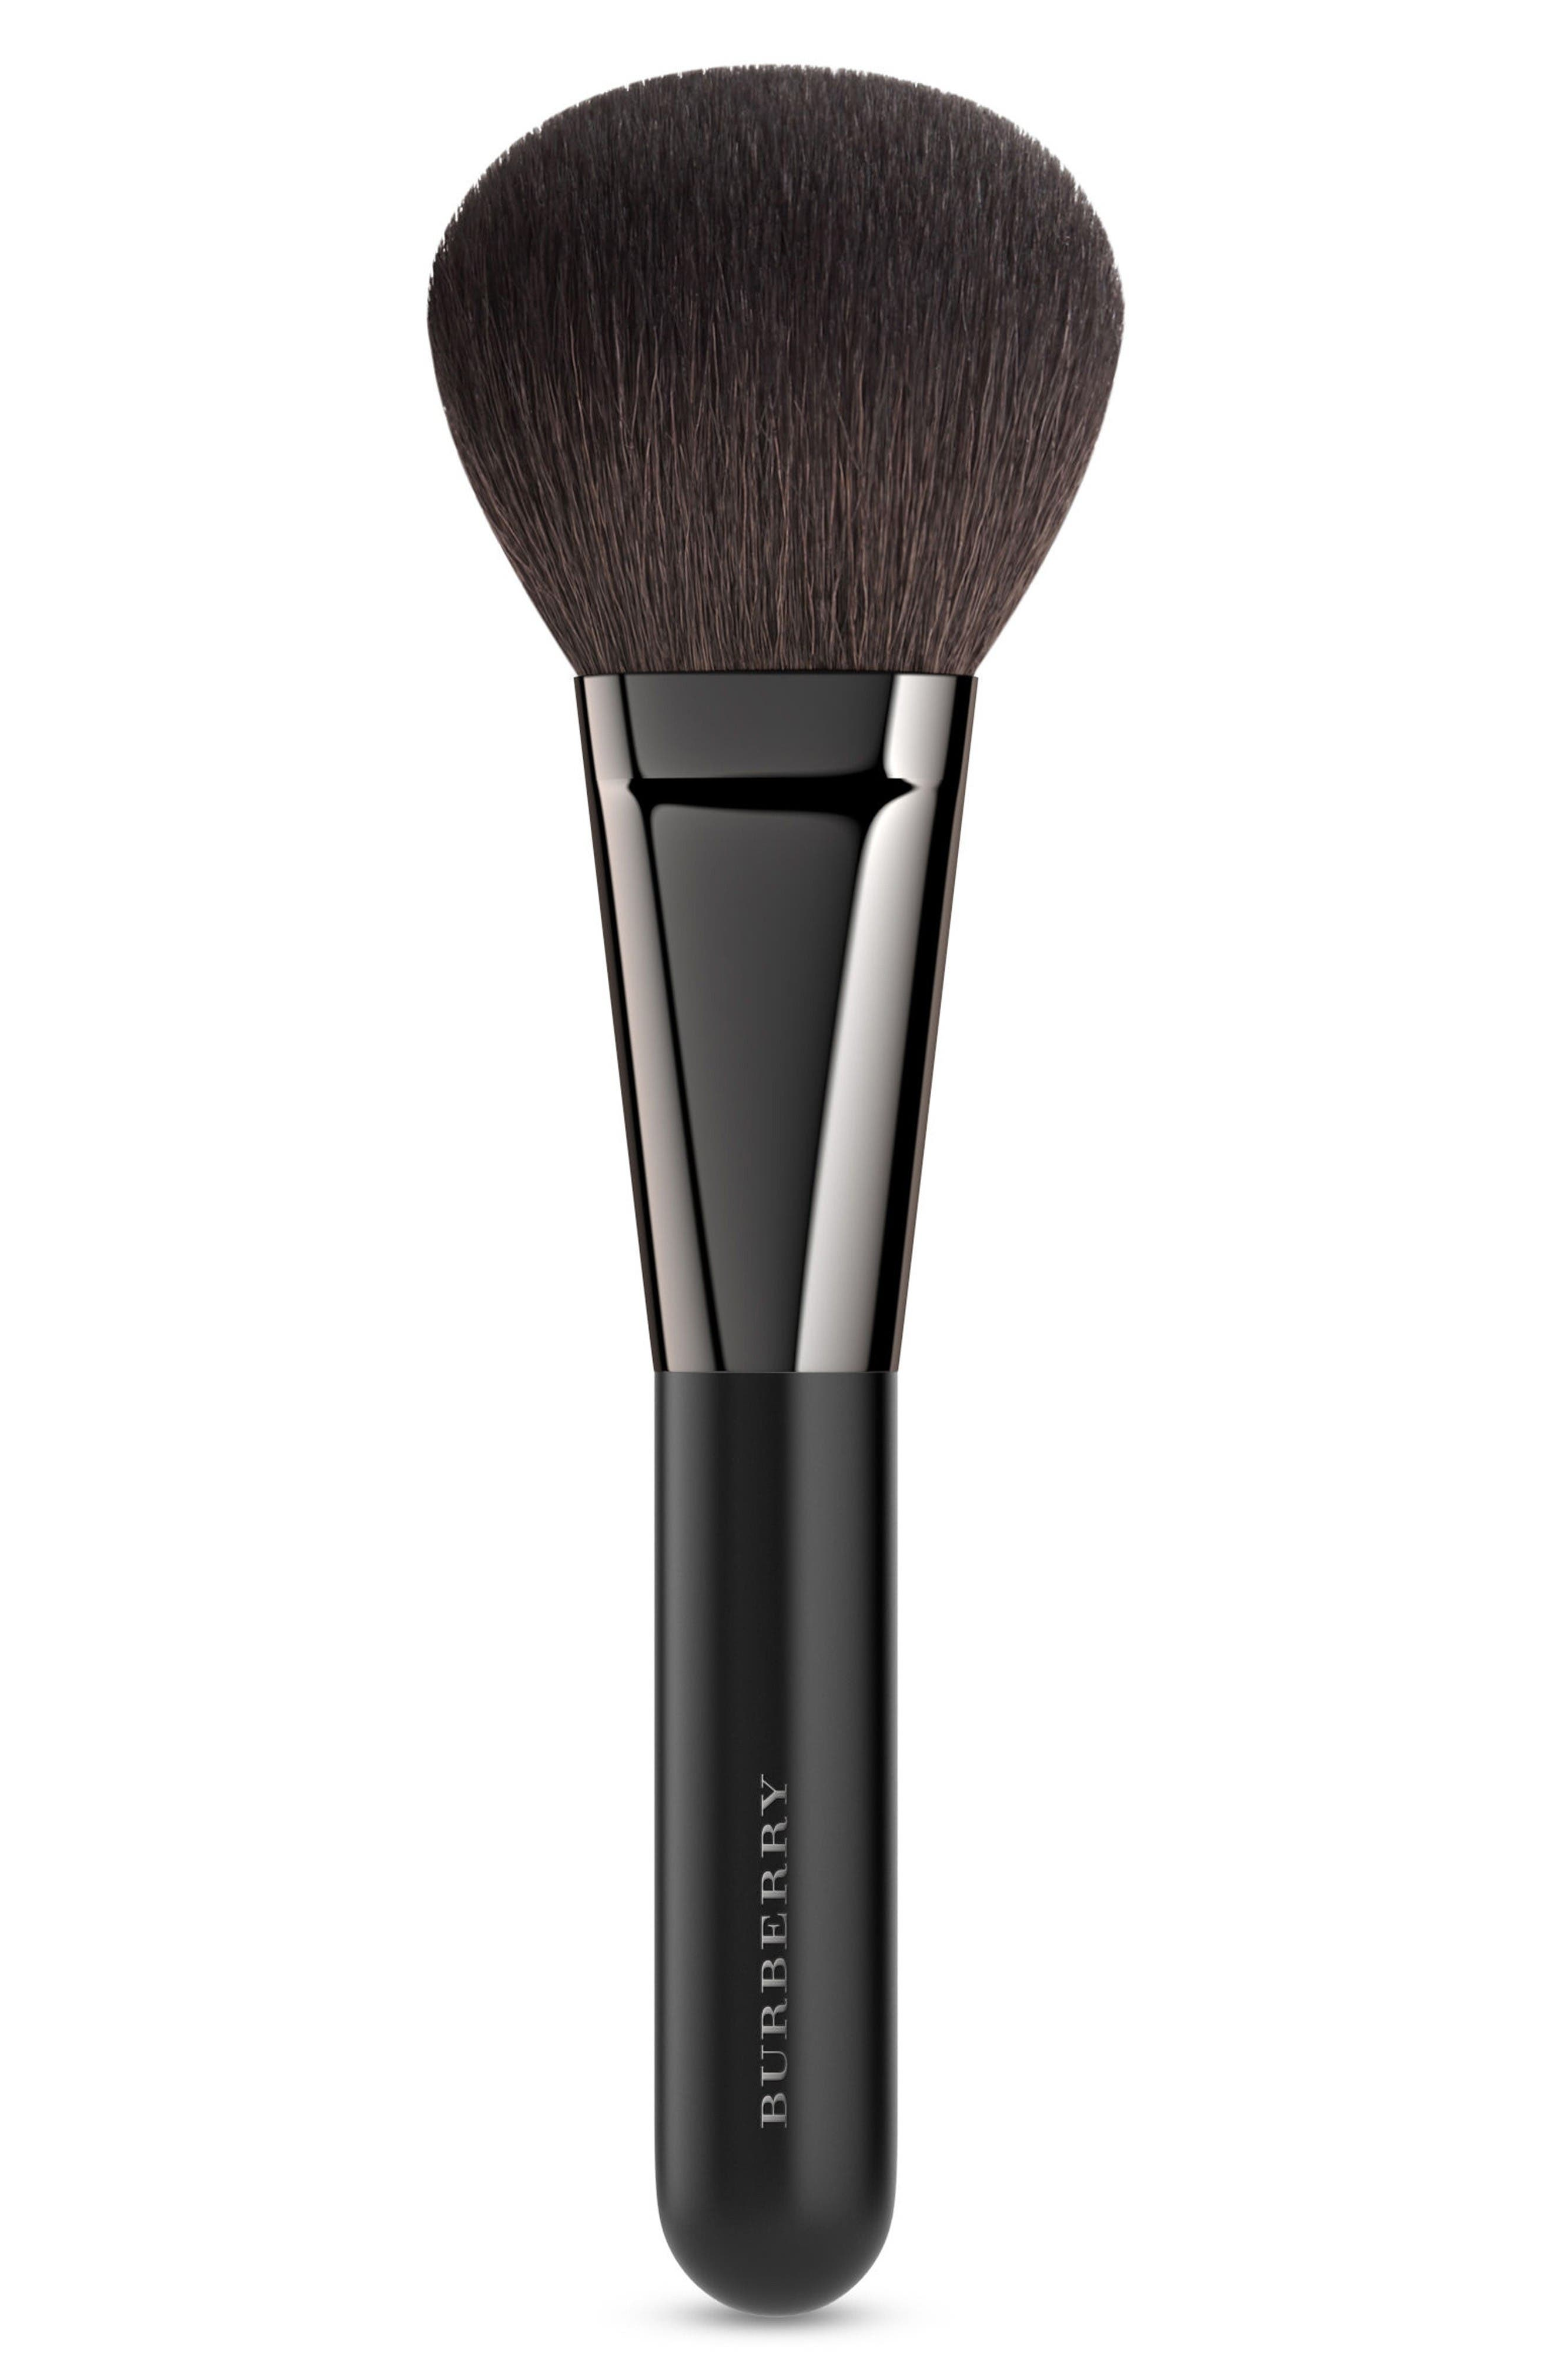 Alternate Image 1 Selected - Burberry Beauty Powder Brush No. 1